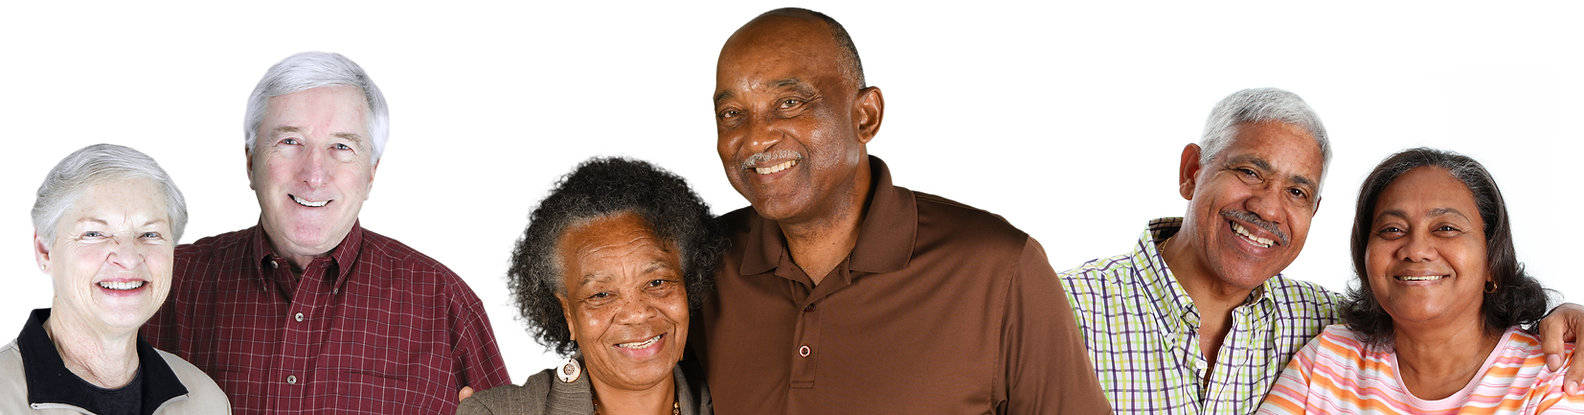 Fixed income couples in need of affordable estate planning and health and elder law services.